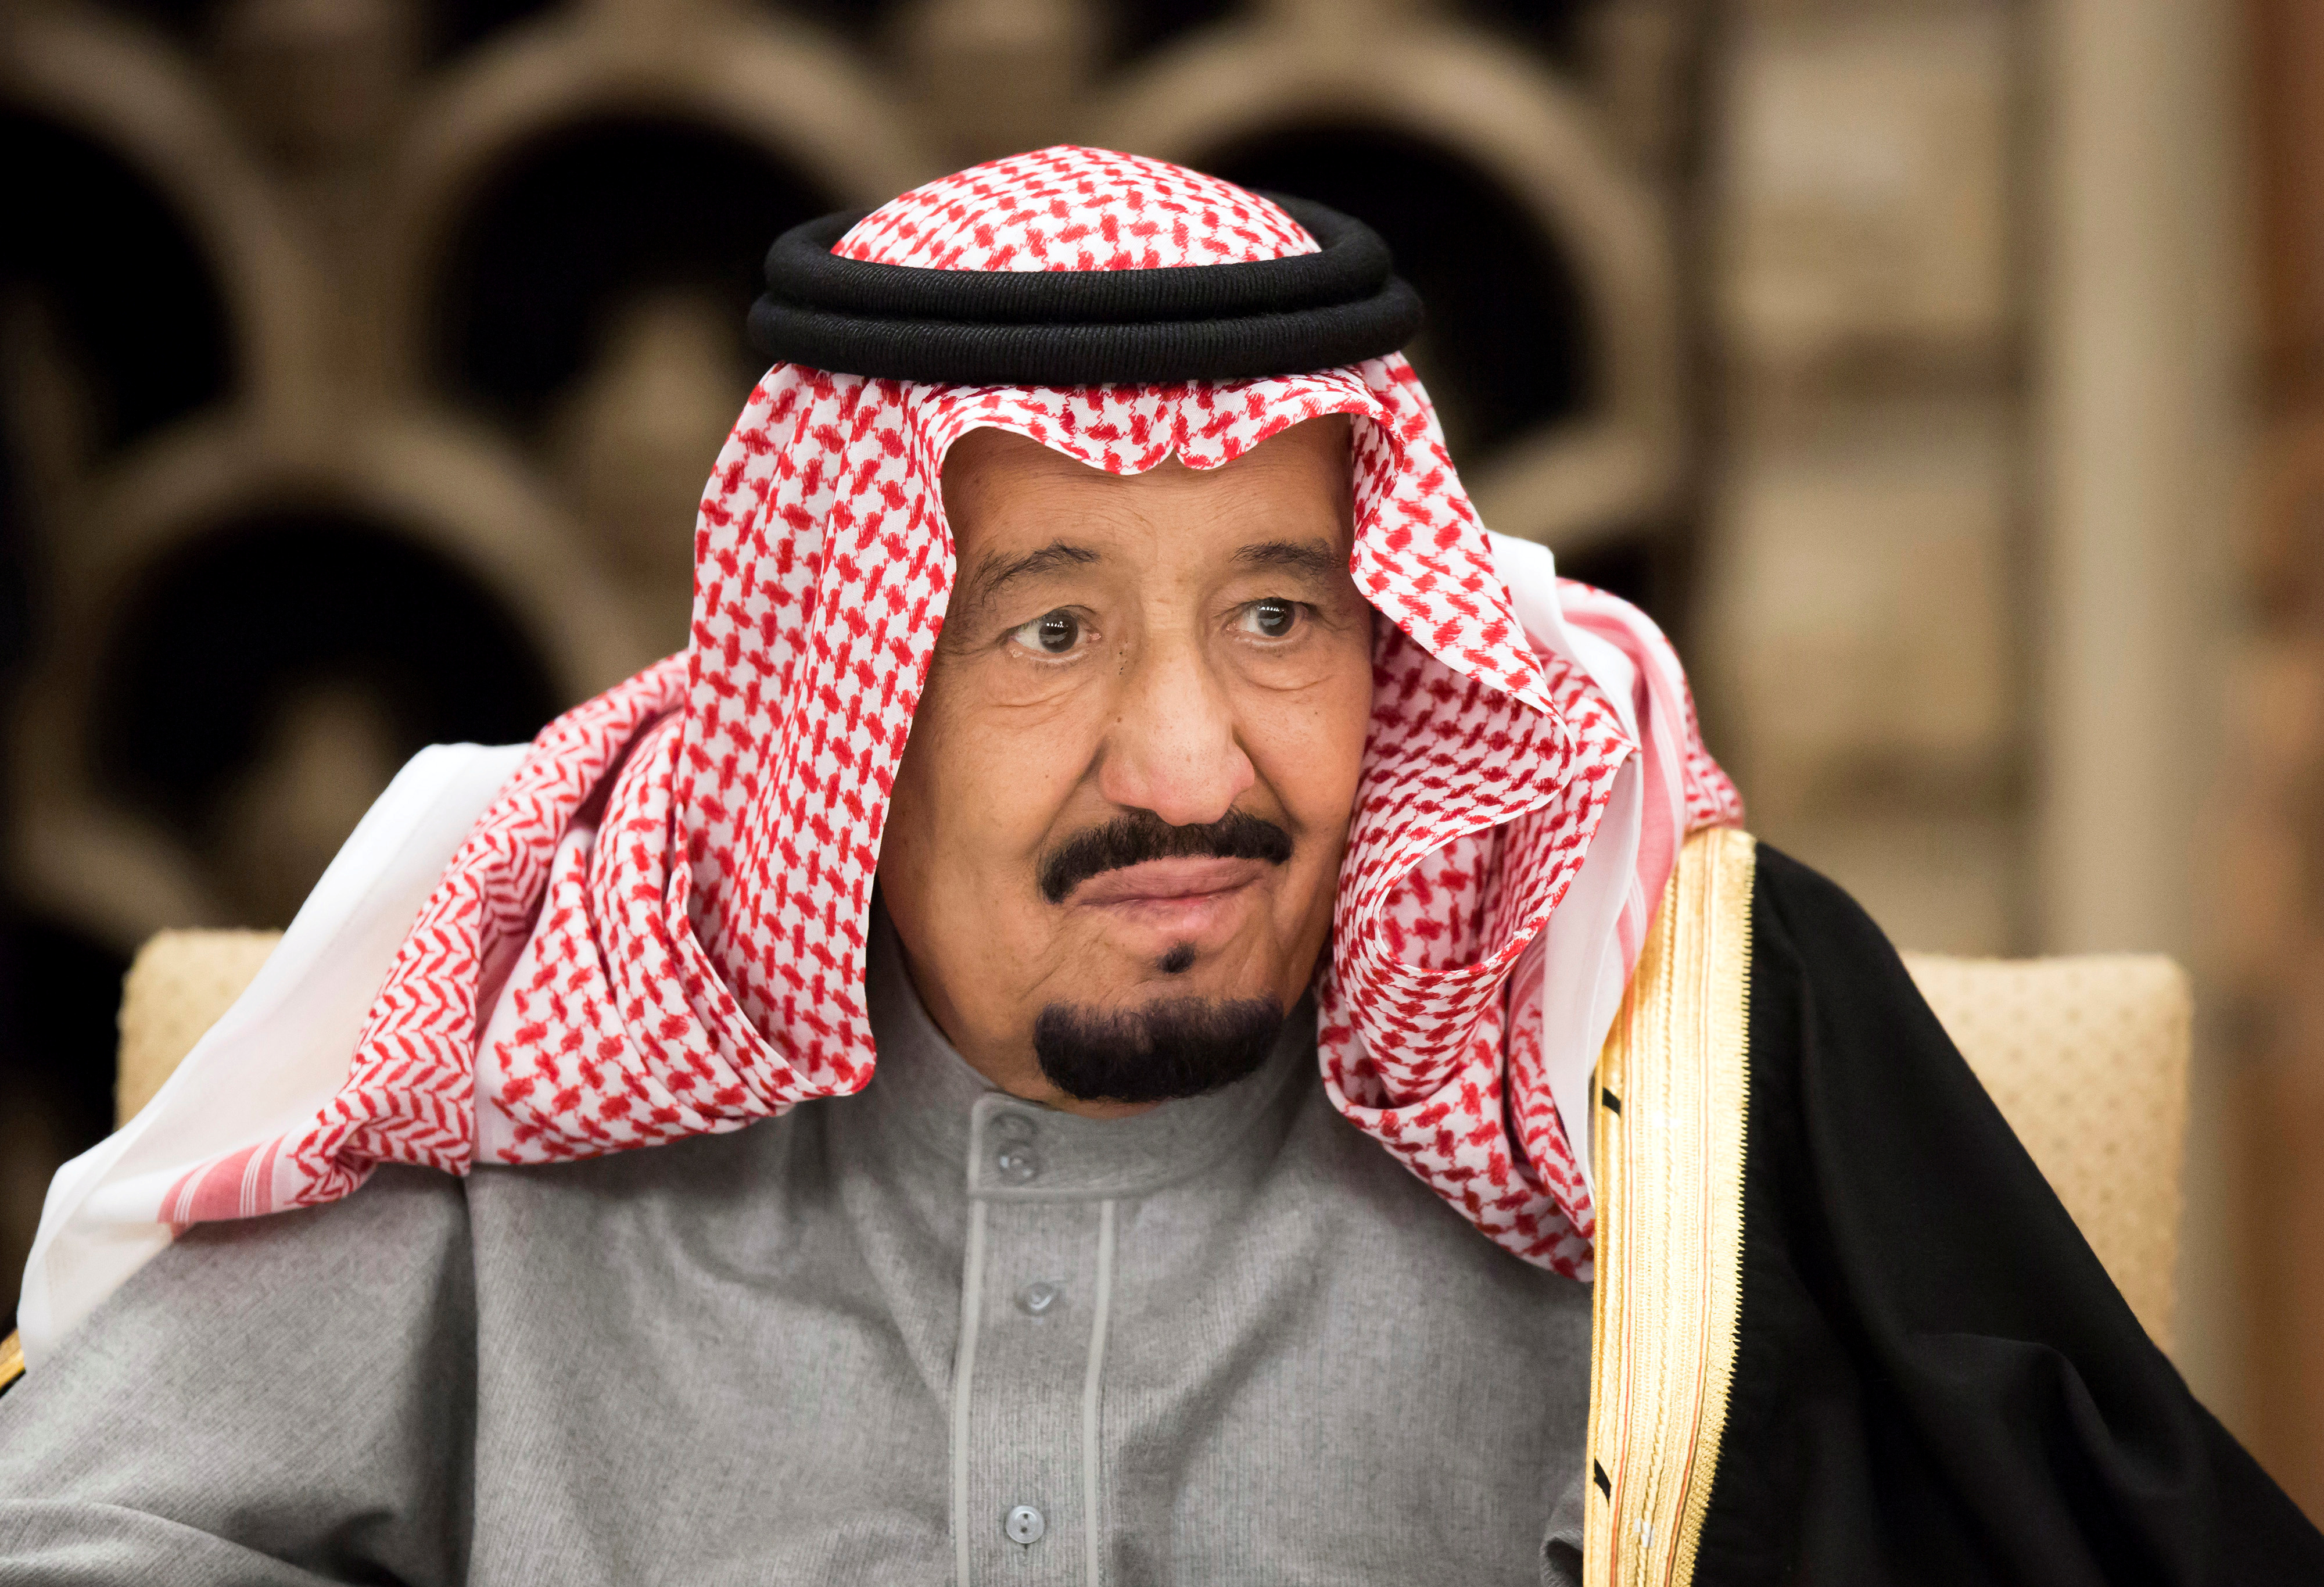 FILE PHOTO: Saudi Arabia's King Salman bin Abdulaziz Al Saud, attends a banquet hosted by Shinzo Abe, Japan's Prime Minister, at the prime minister's official residence in Tokyo, Japan, Monday, March 13, 2017. To match Insight SAUDI-POLITICS/KING REUTERS/Tomohiro Ohsumi/Pool/File Photo